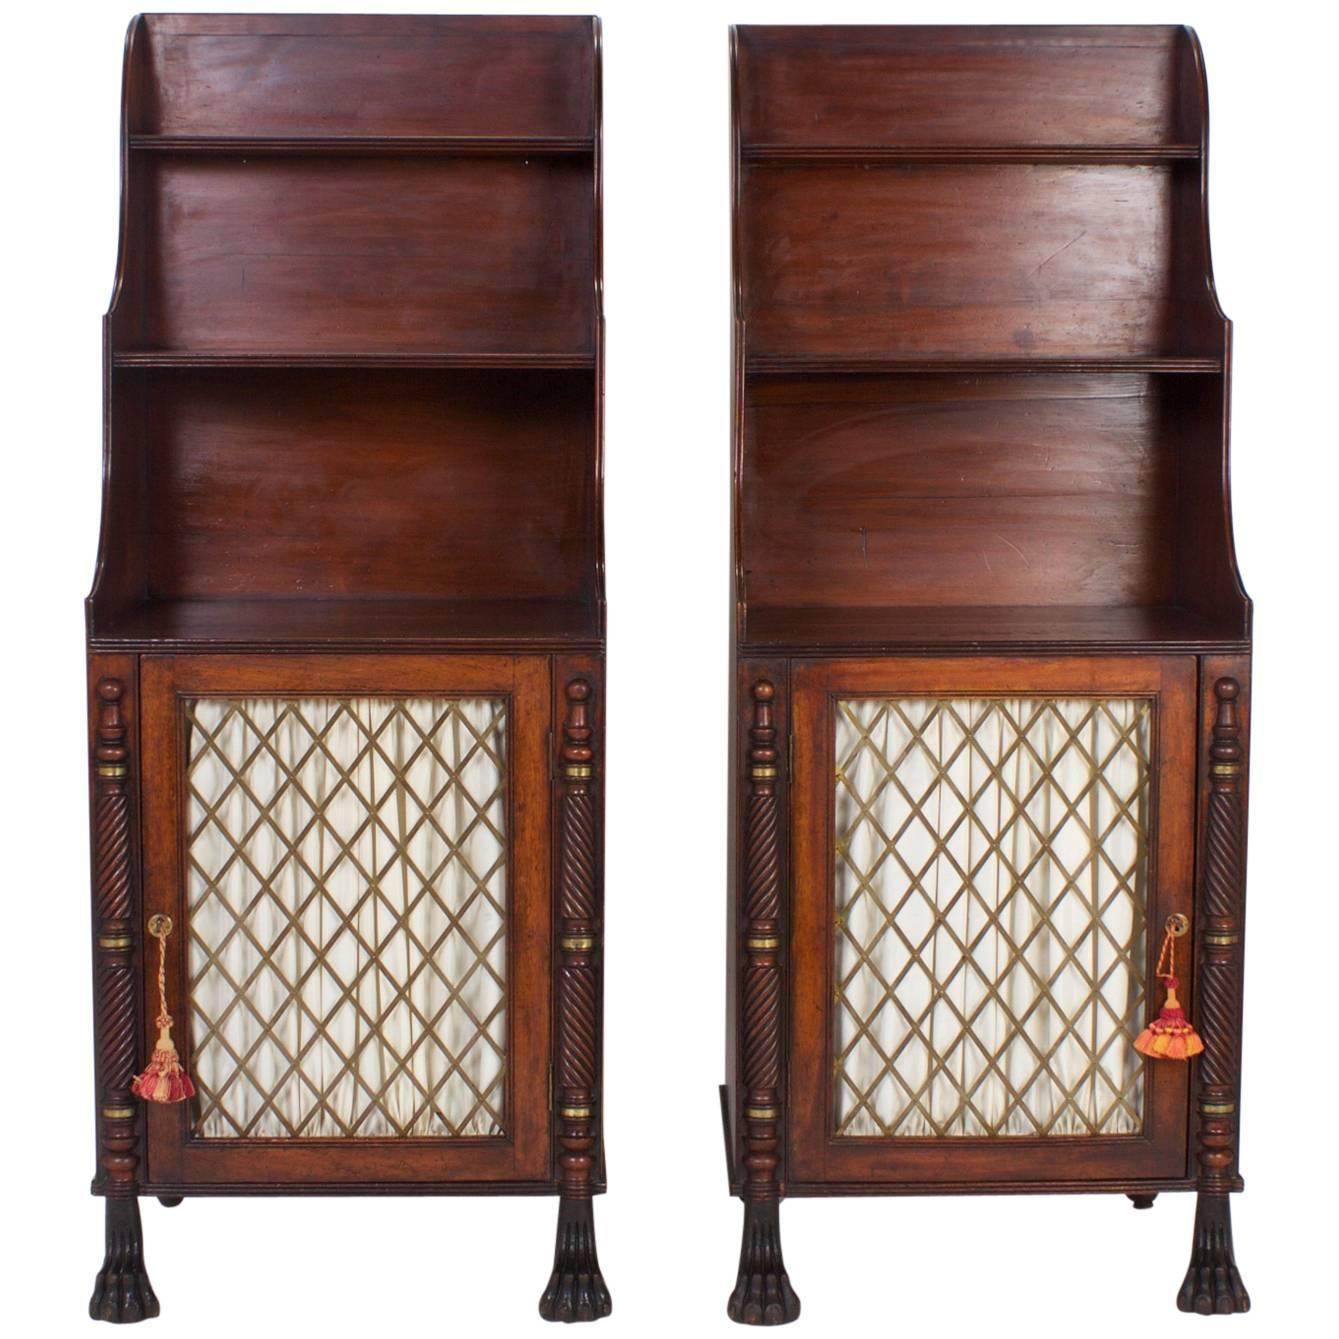 Antique Leather Sofa Northern Ireland: Pair Of Antique Irish Chiffoniers For Sale At 1stdibs